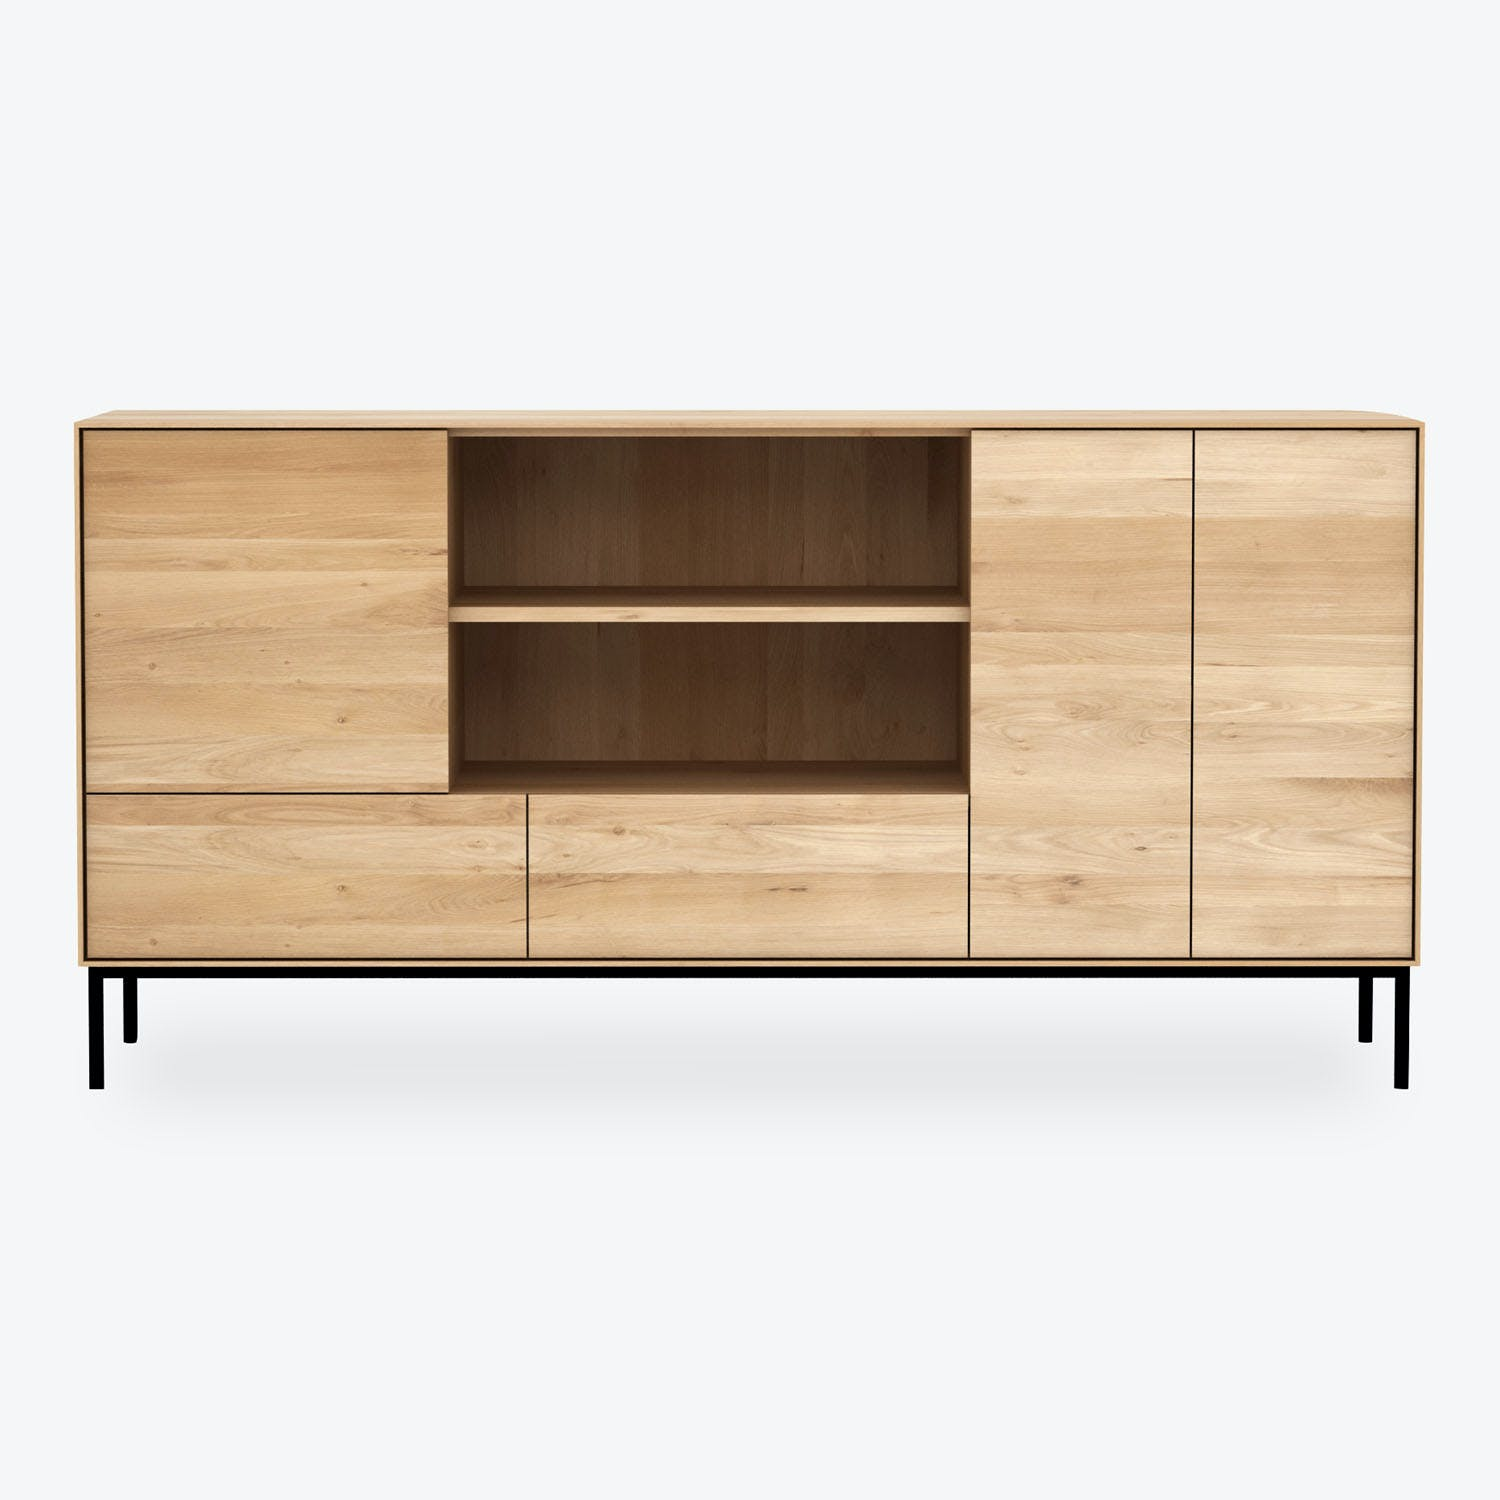 Product Image - Whitebird Two Drawer Sideboard